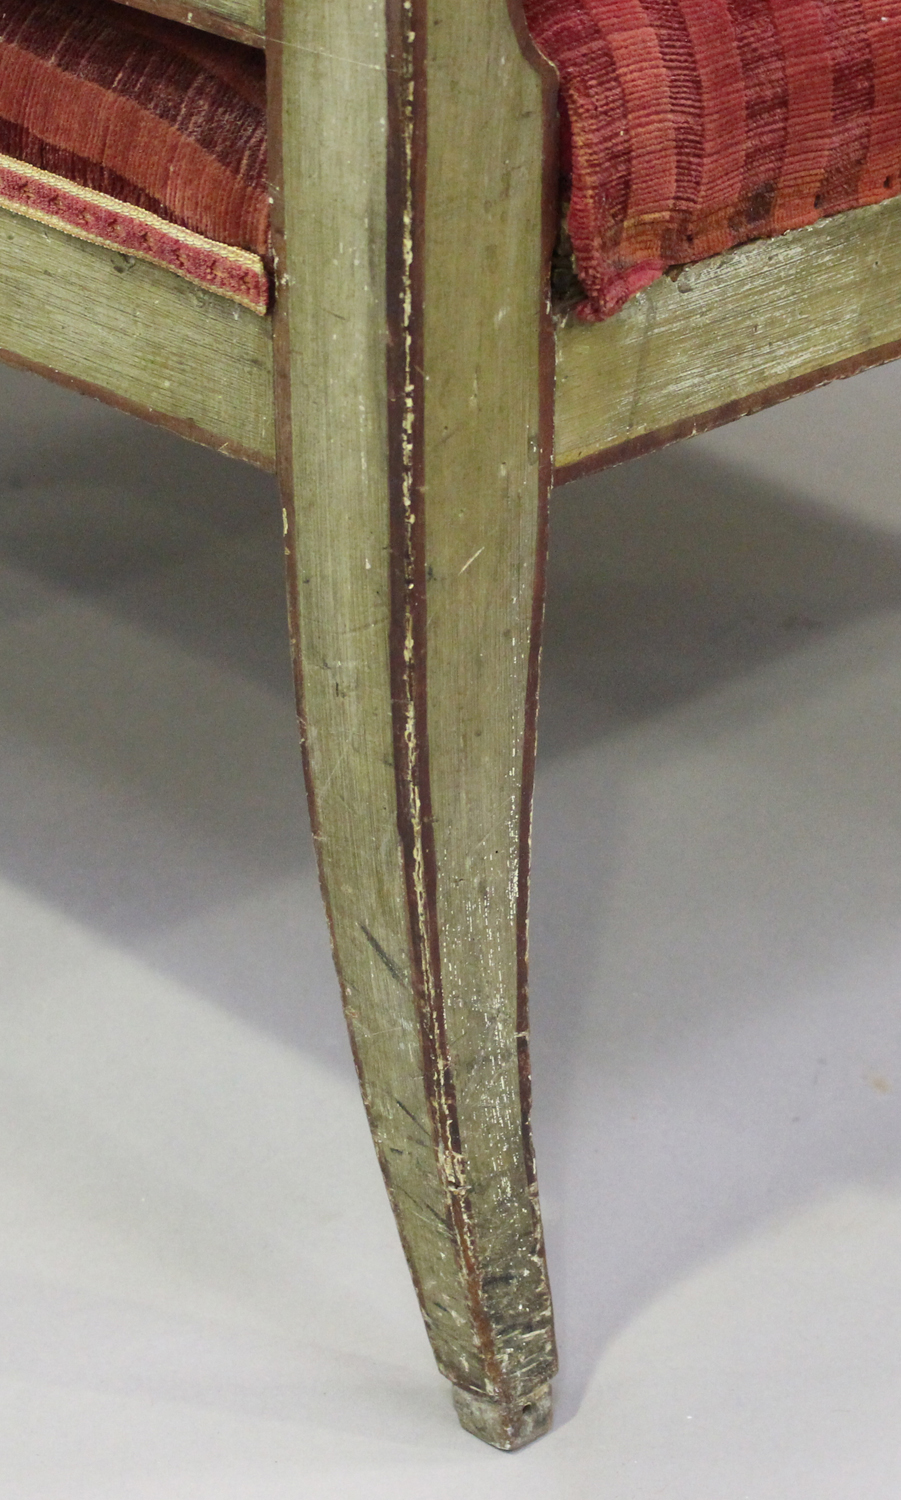 A 19th century Swedish green painted scroll armchair with foliate decoration, upholstered in red - Image 4 of 9